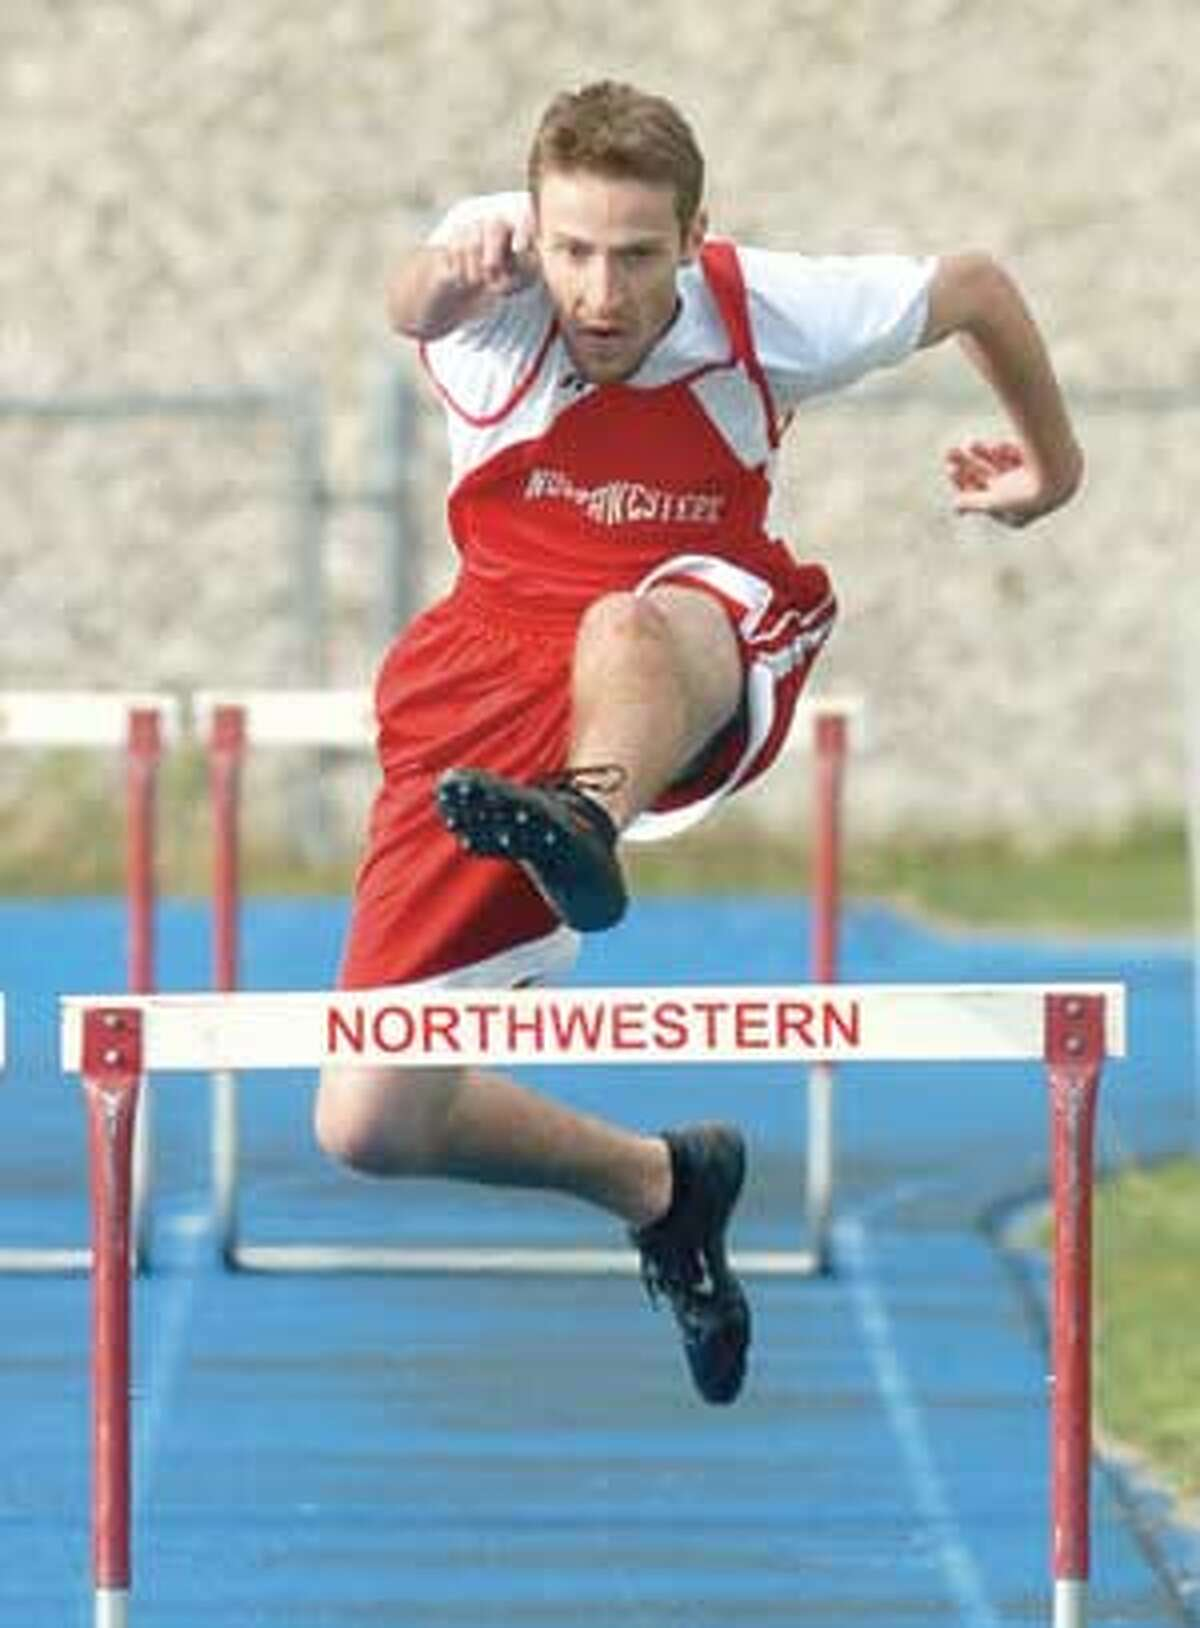 MIC NICOSIA/Register Citizen Northwestern's Jason Boratko competes in the 300 meter hurdles event during Tuesday's meet with Nonnewaug in Winsted. Purchase a glossy print of this photo and more at www.registercitizen.com.